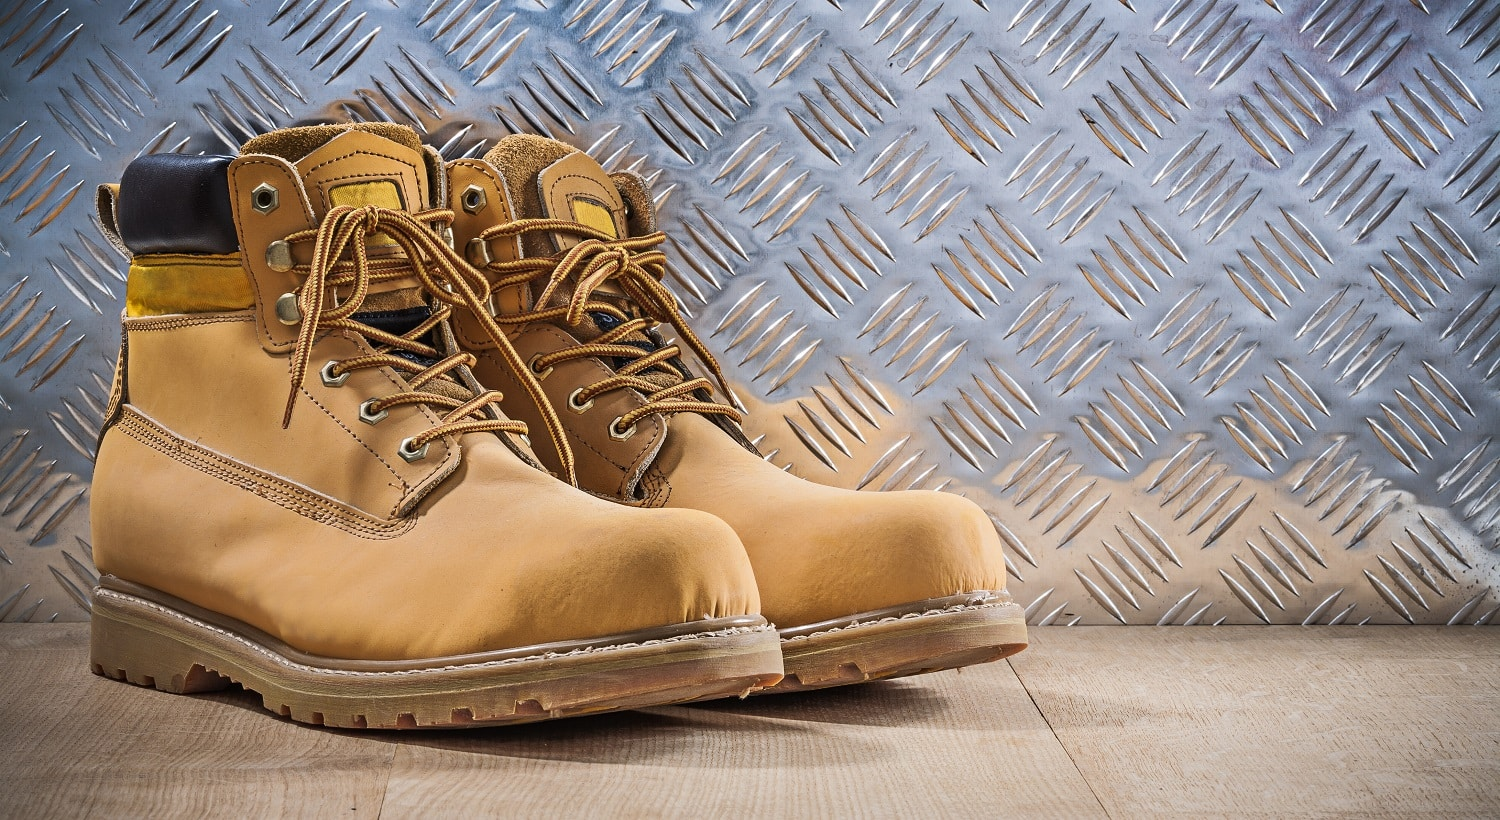 Pair of protective waterproof boots wooden board grooved metal sheet construction concept.